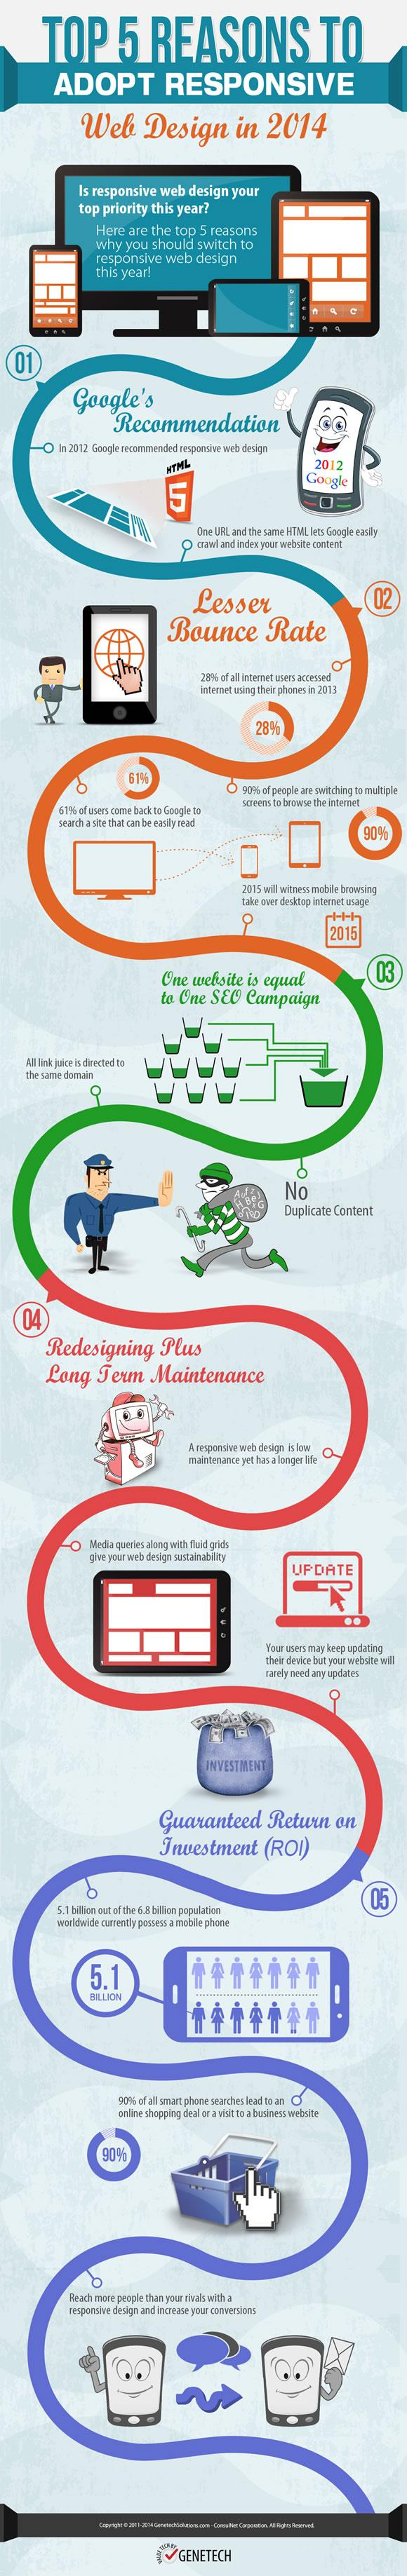 5 Reasons to Implement Responsive Web Design in 2014 [INFOGRAPHIC]